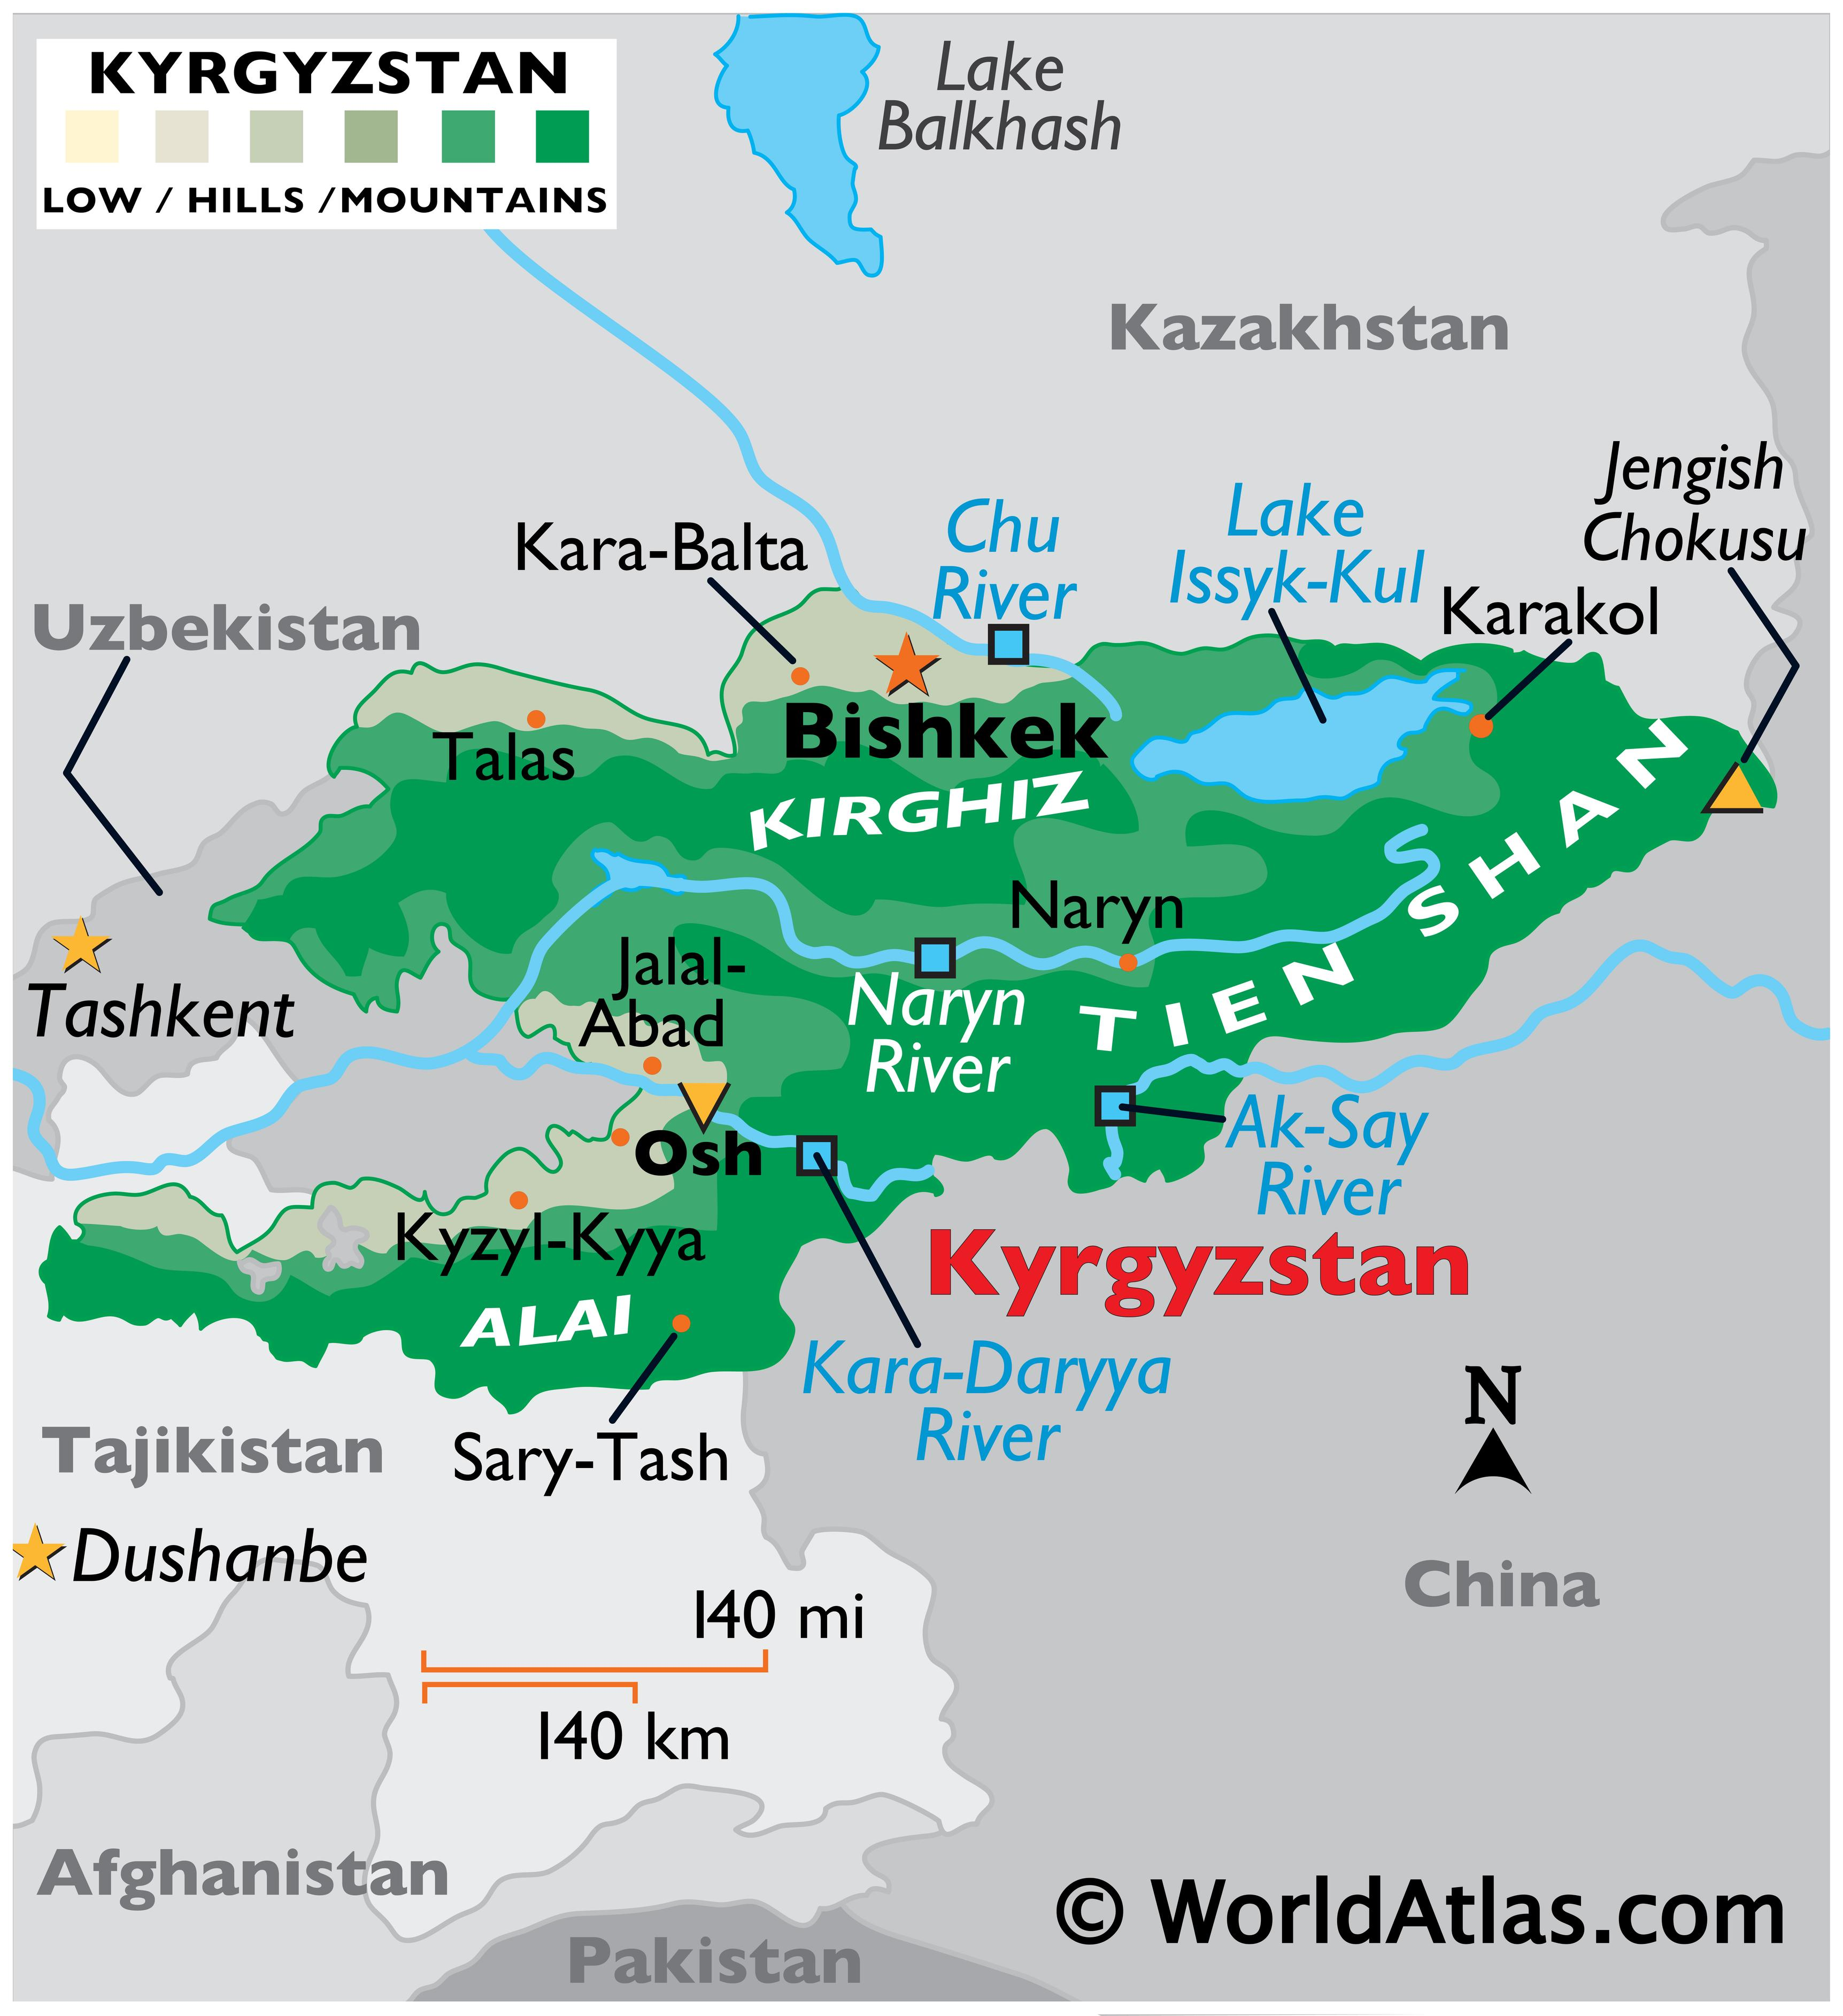 Physical Map of Kyrgyzstan showing relief, highest point and lowest points, major mountain ranges, rivers, important urban centres, etc.